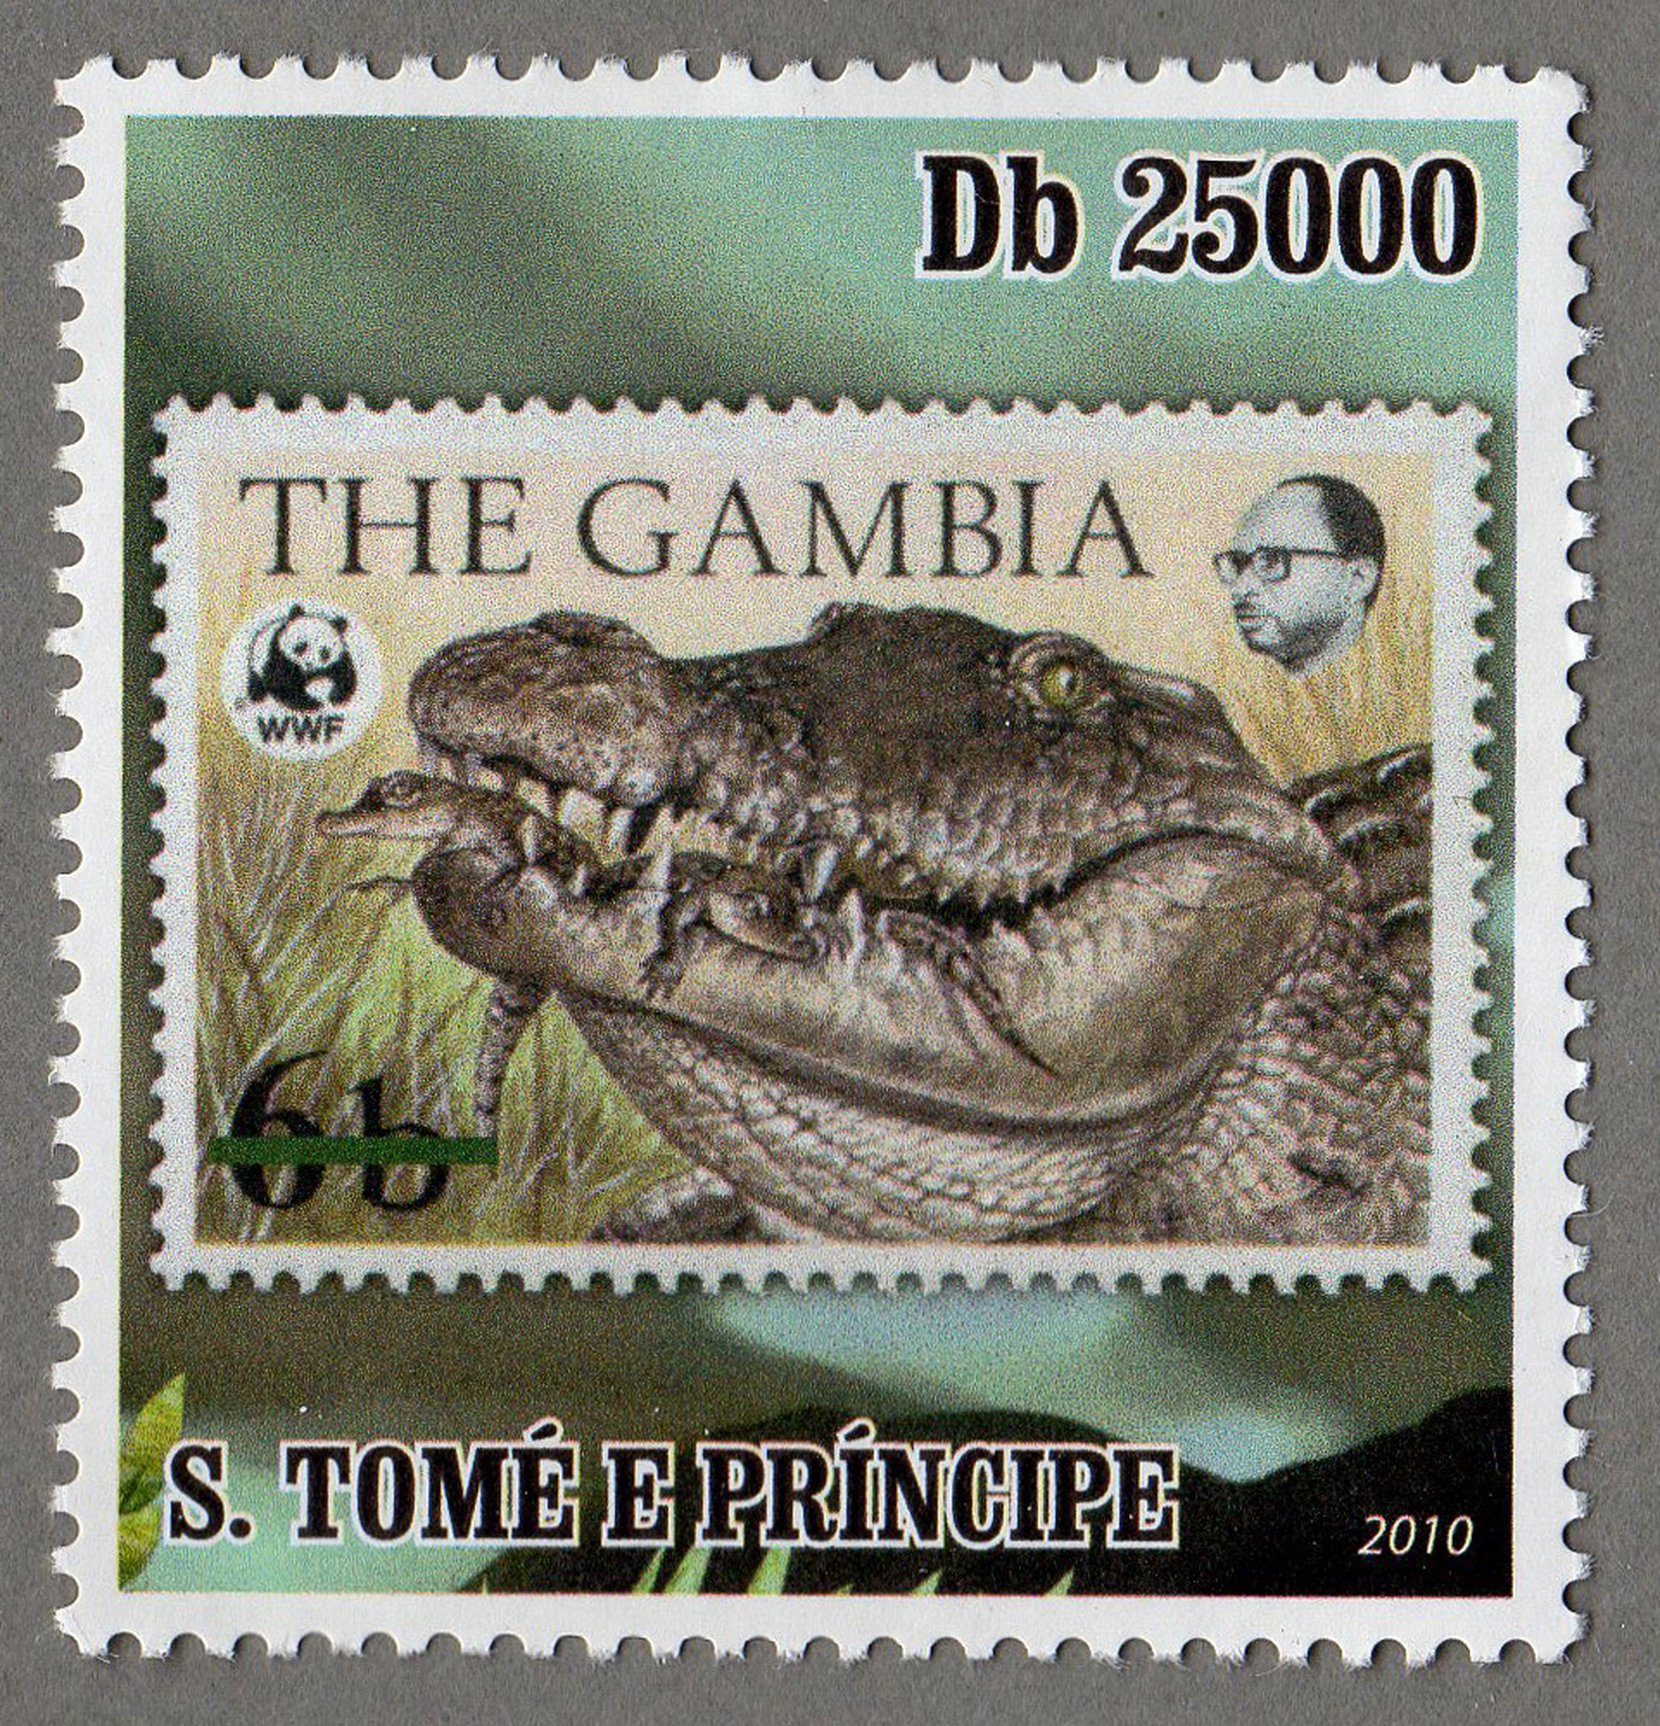 the gambia, s.tome e principe stamp (4) philately postage stamps